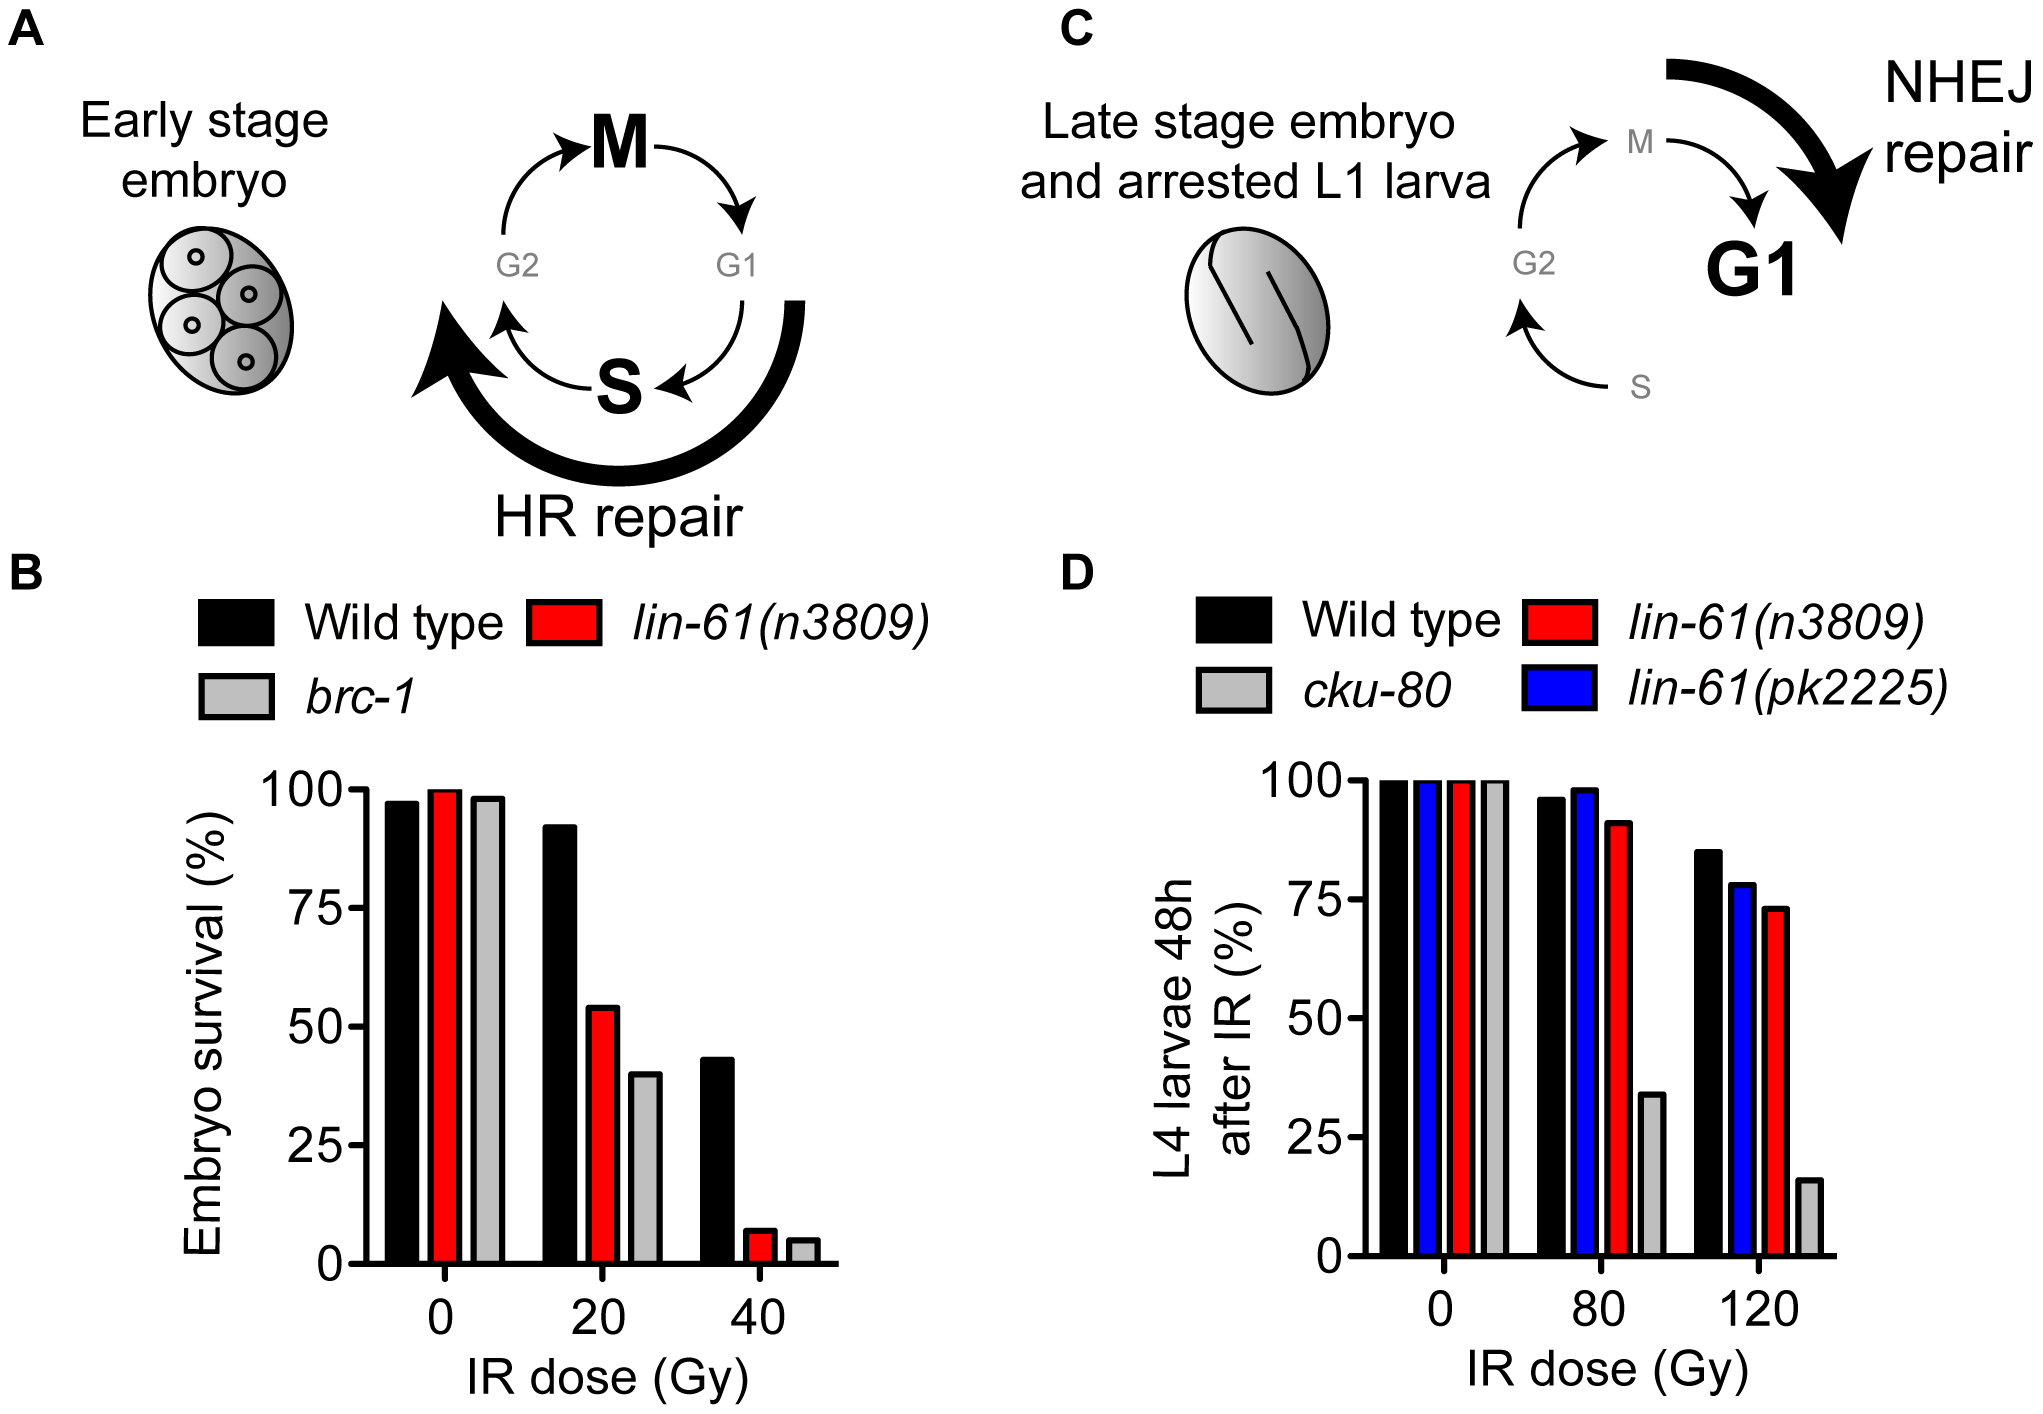 LIN-61 is needed for HR, but not NHEJ, in somatic cells.